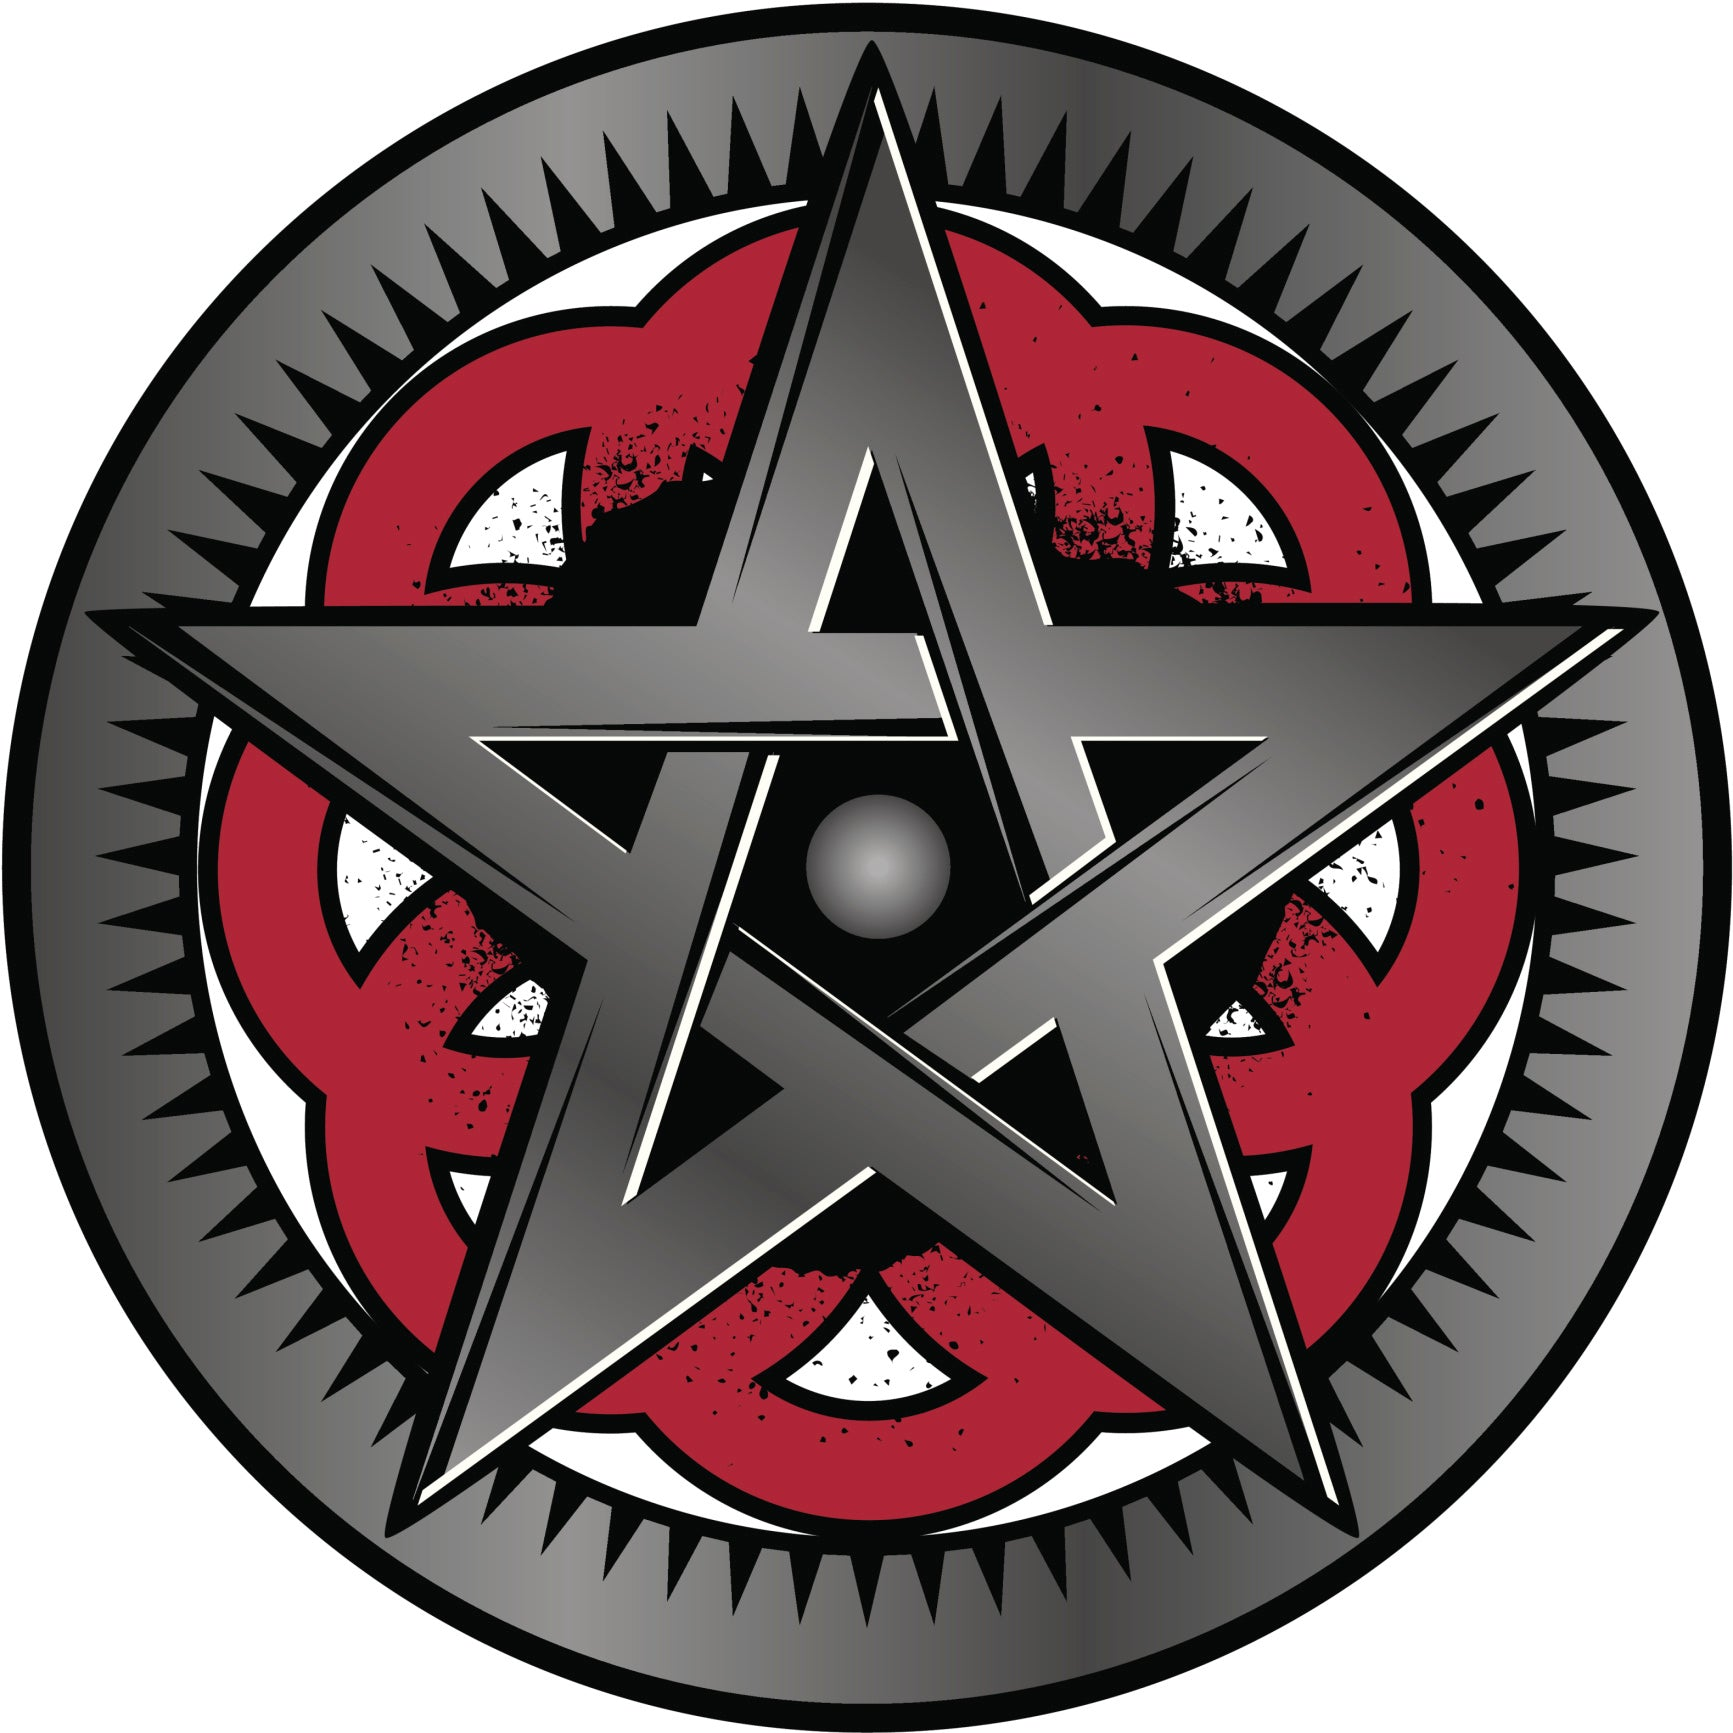 PENTAGRAM STAR CREST GREY BLACK RED WHITE Vinyl Decal Sticker